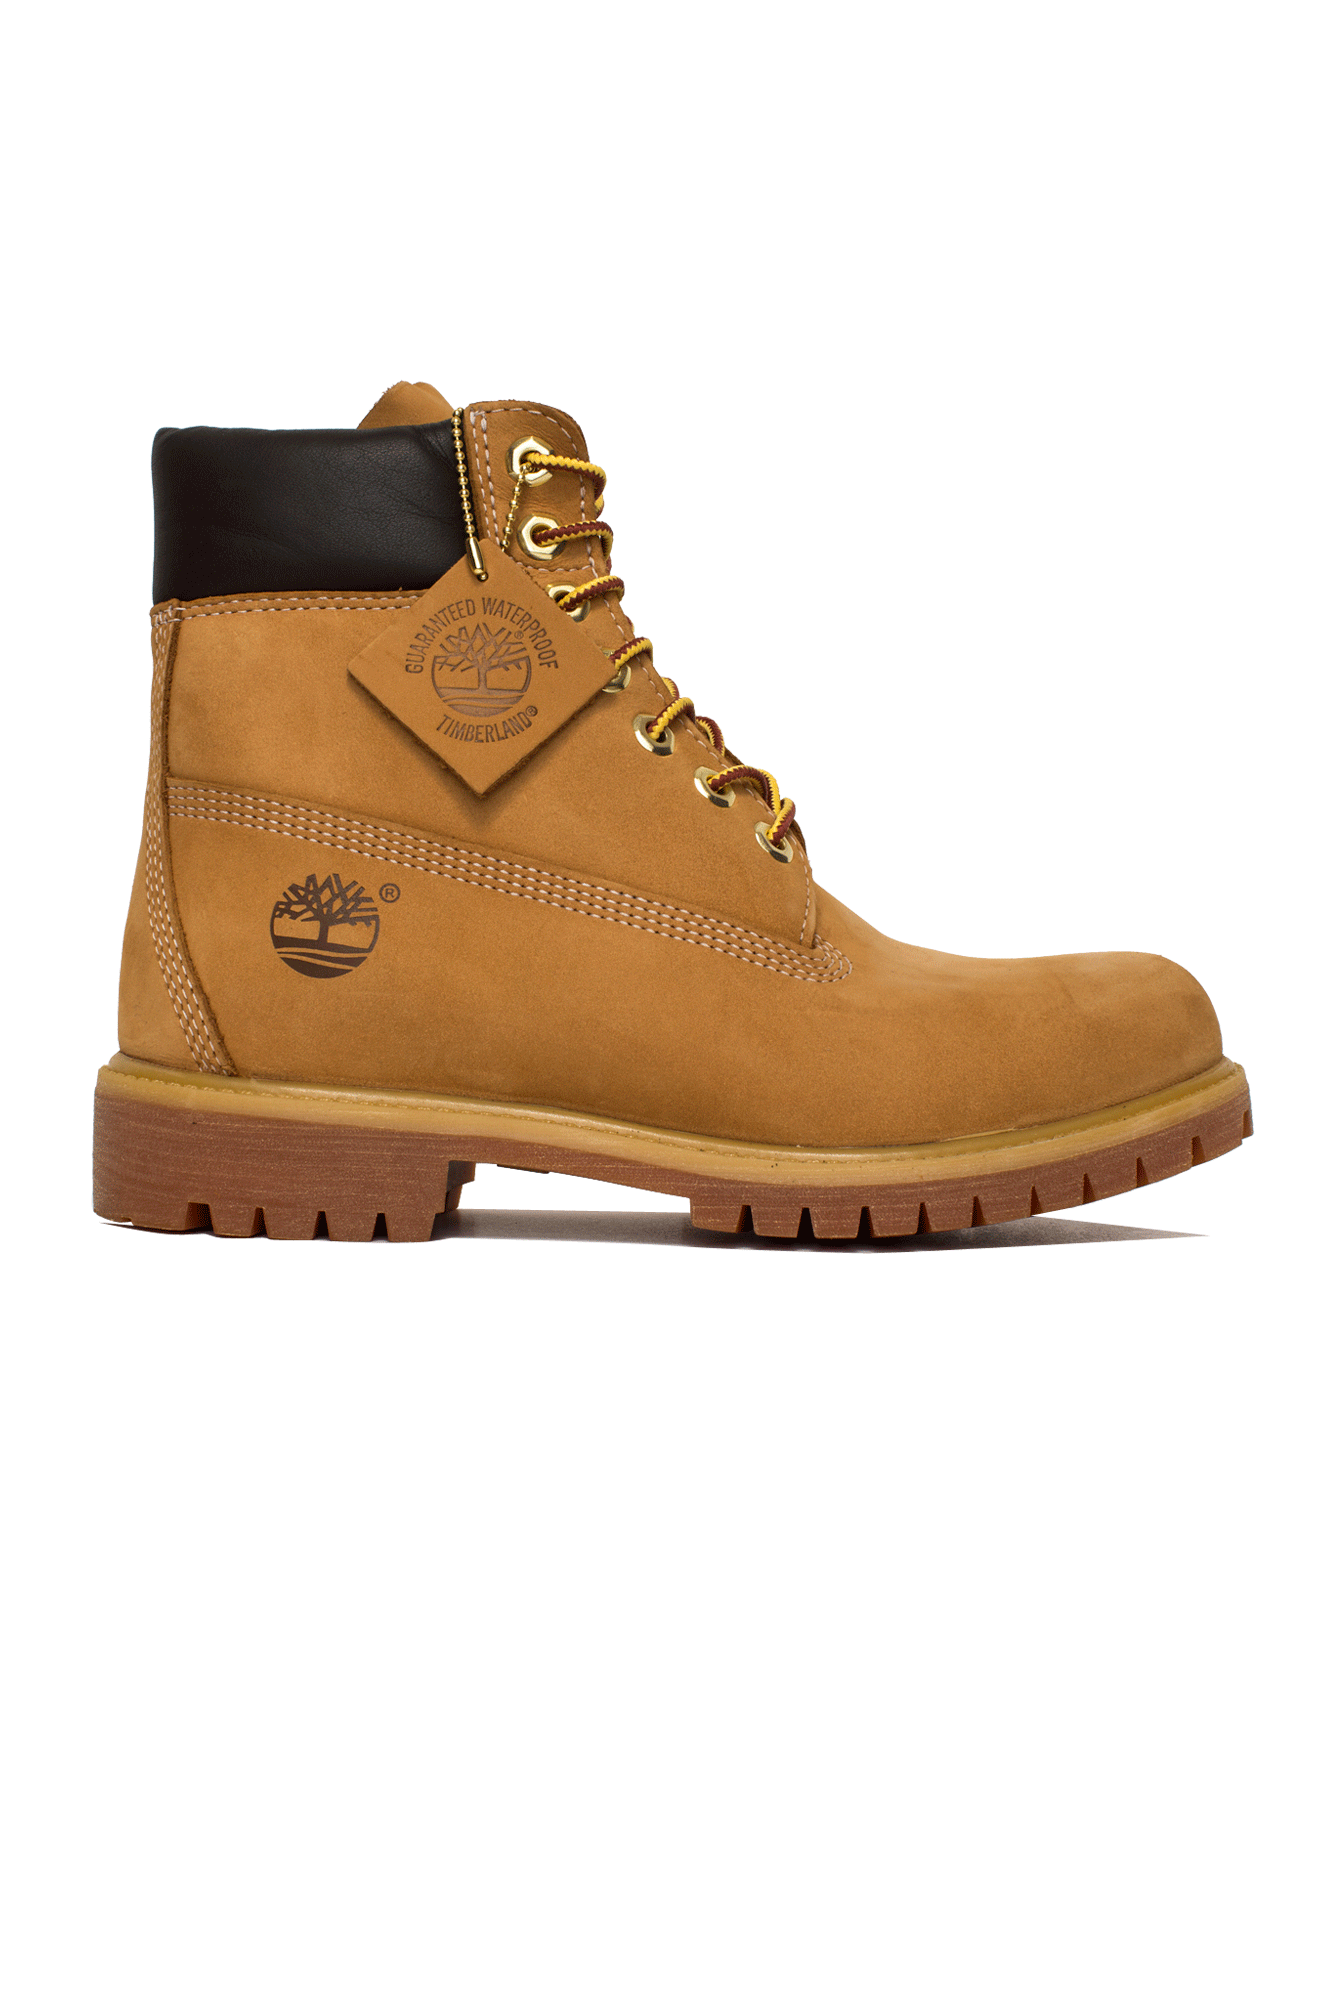 Timberland Boots 6 Inch Premium Boot Yellow 100617131#000#7131#6 - One Block Down